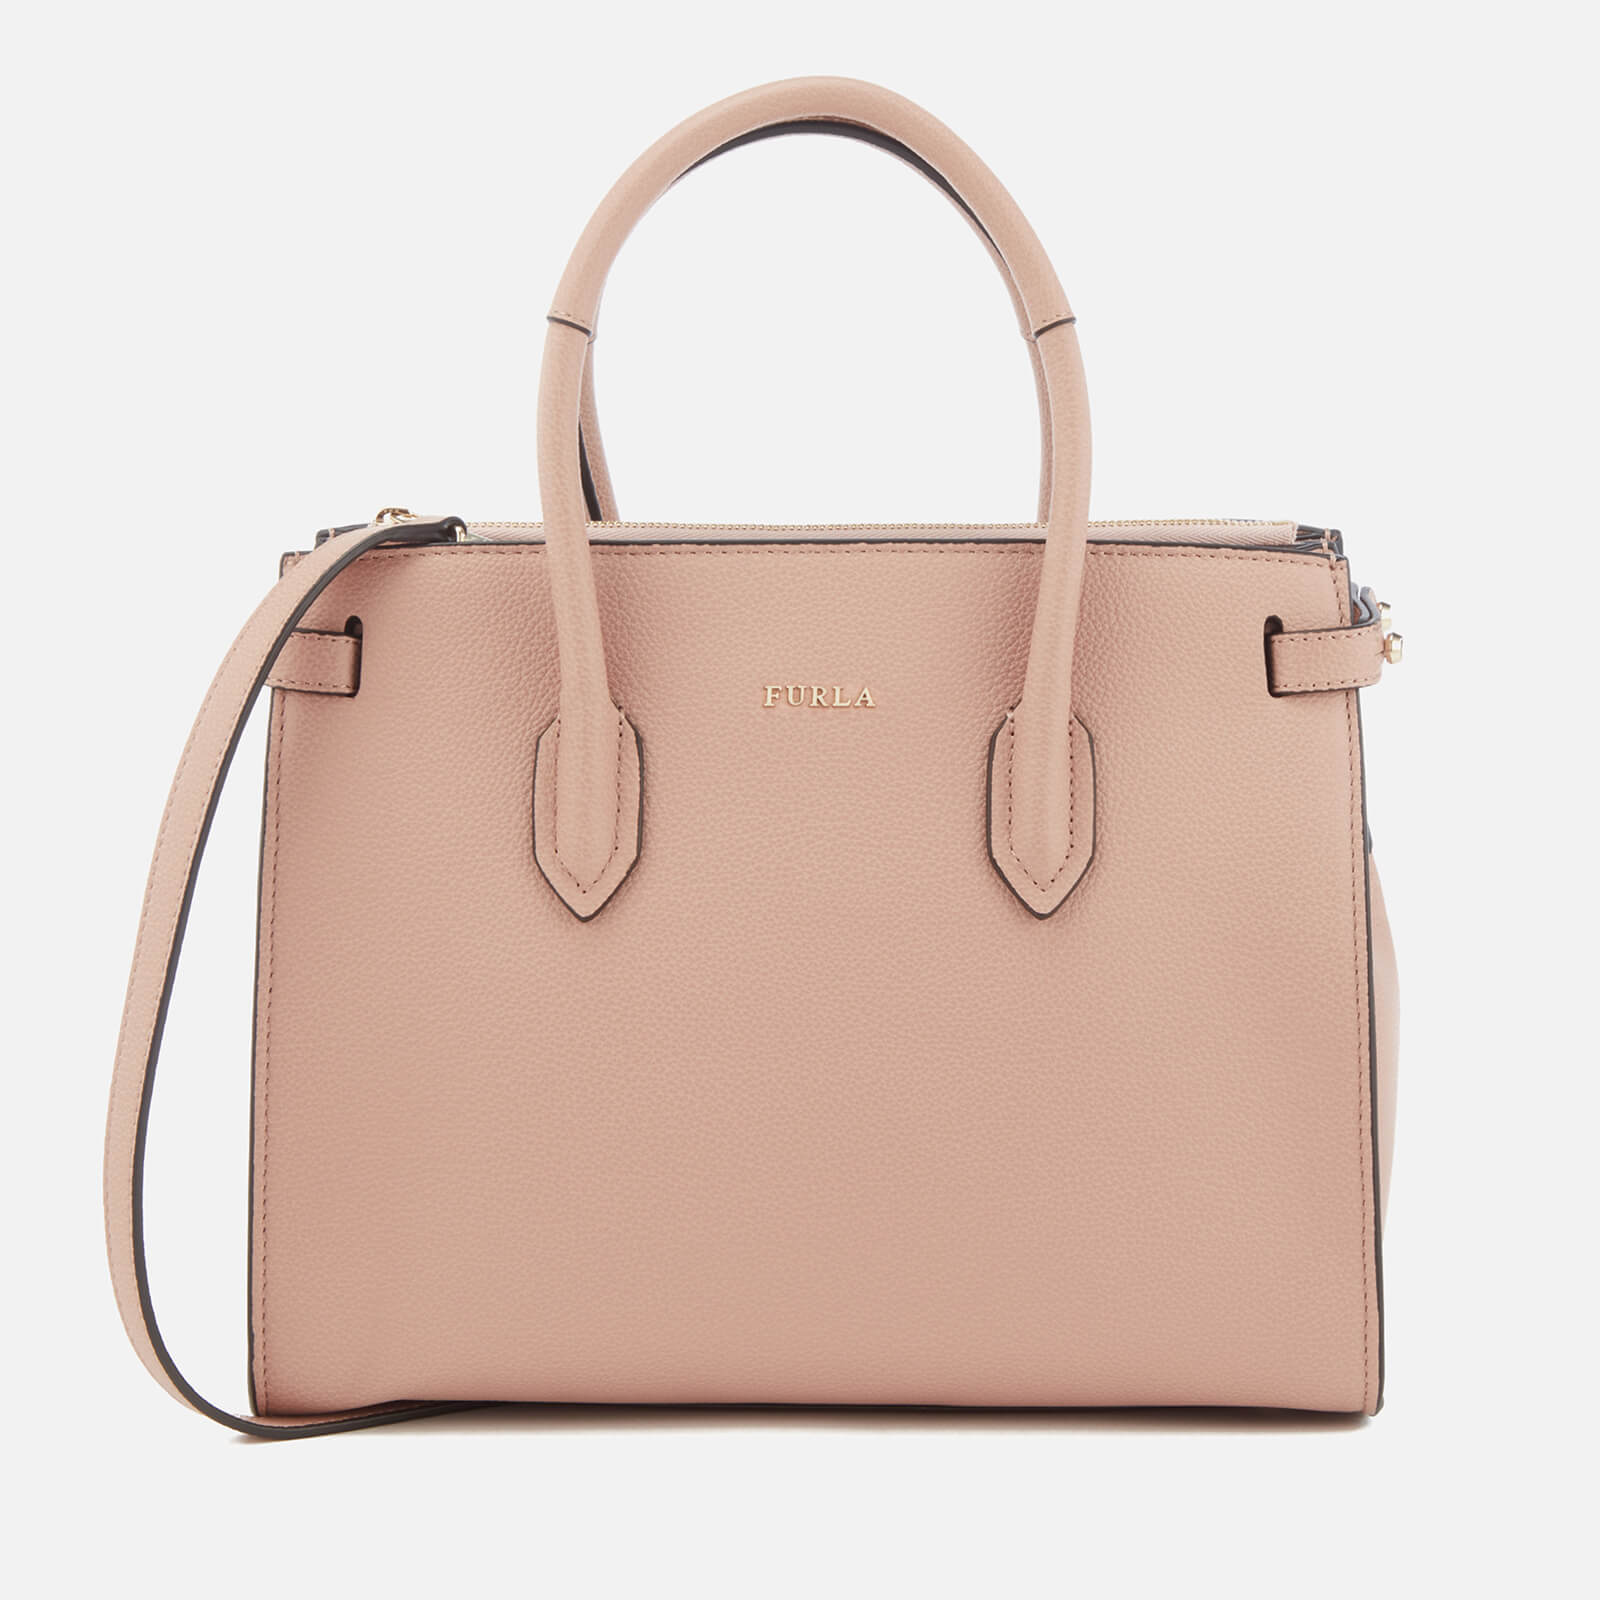 Furla Women's Pin Small East West Tote Bag - Moonstone 原價315英鎊 優惠價189英鎊